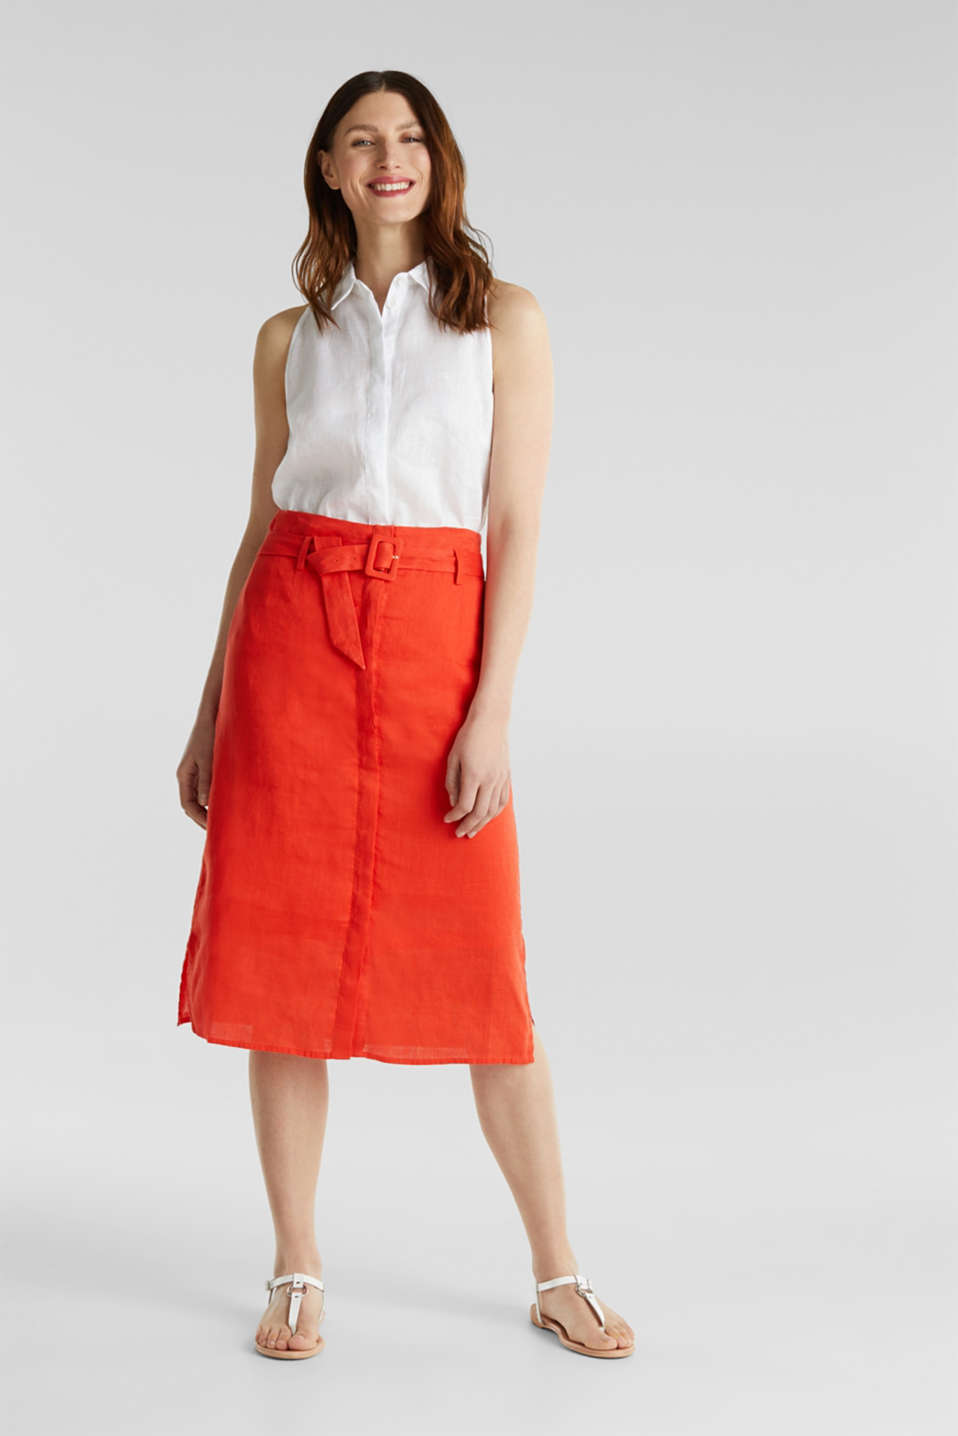 Esprit - Made of linen: Skirt with a button placket